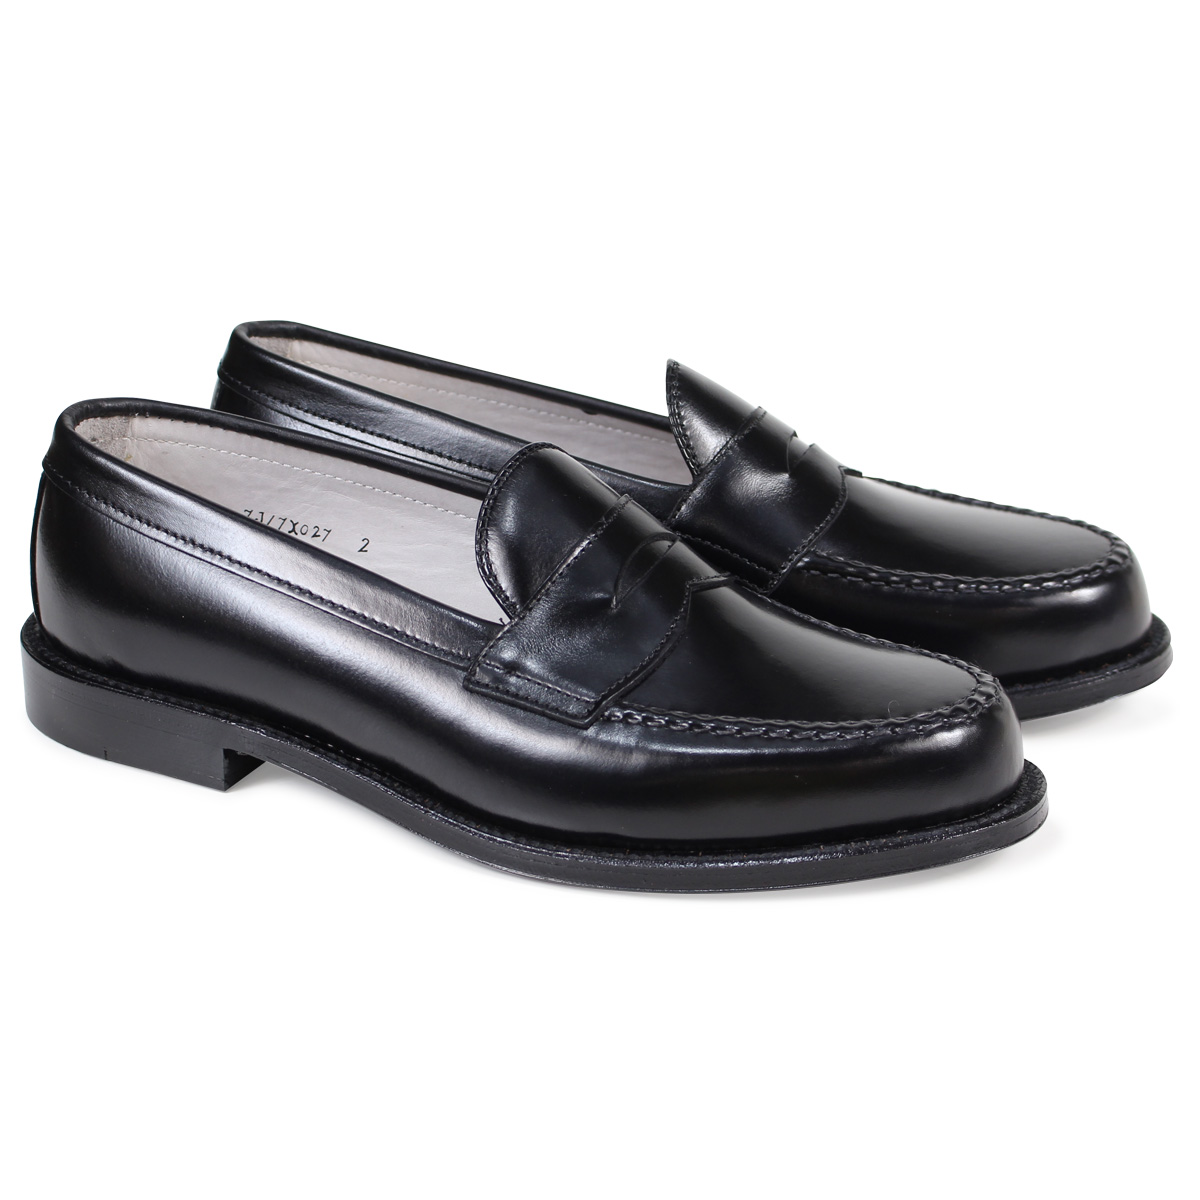 Loafers Shoes alden alden loafers shoes leisure handsewn d wise 981 mens RQIGNJA